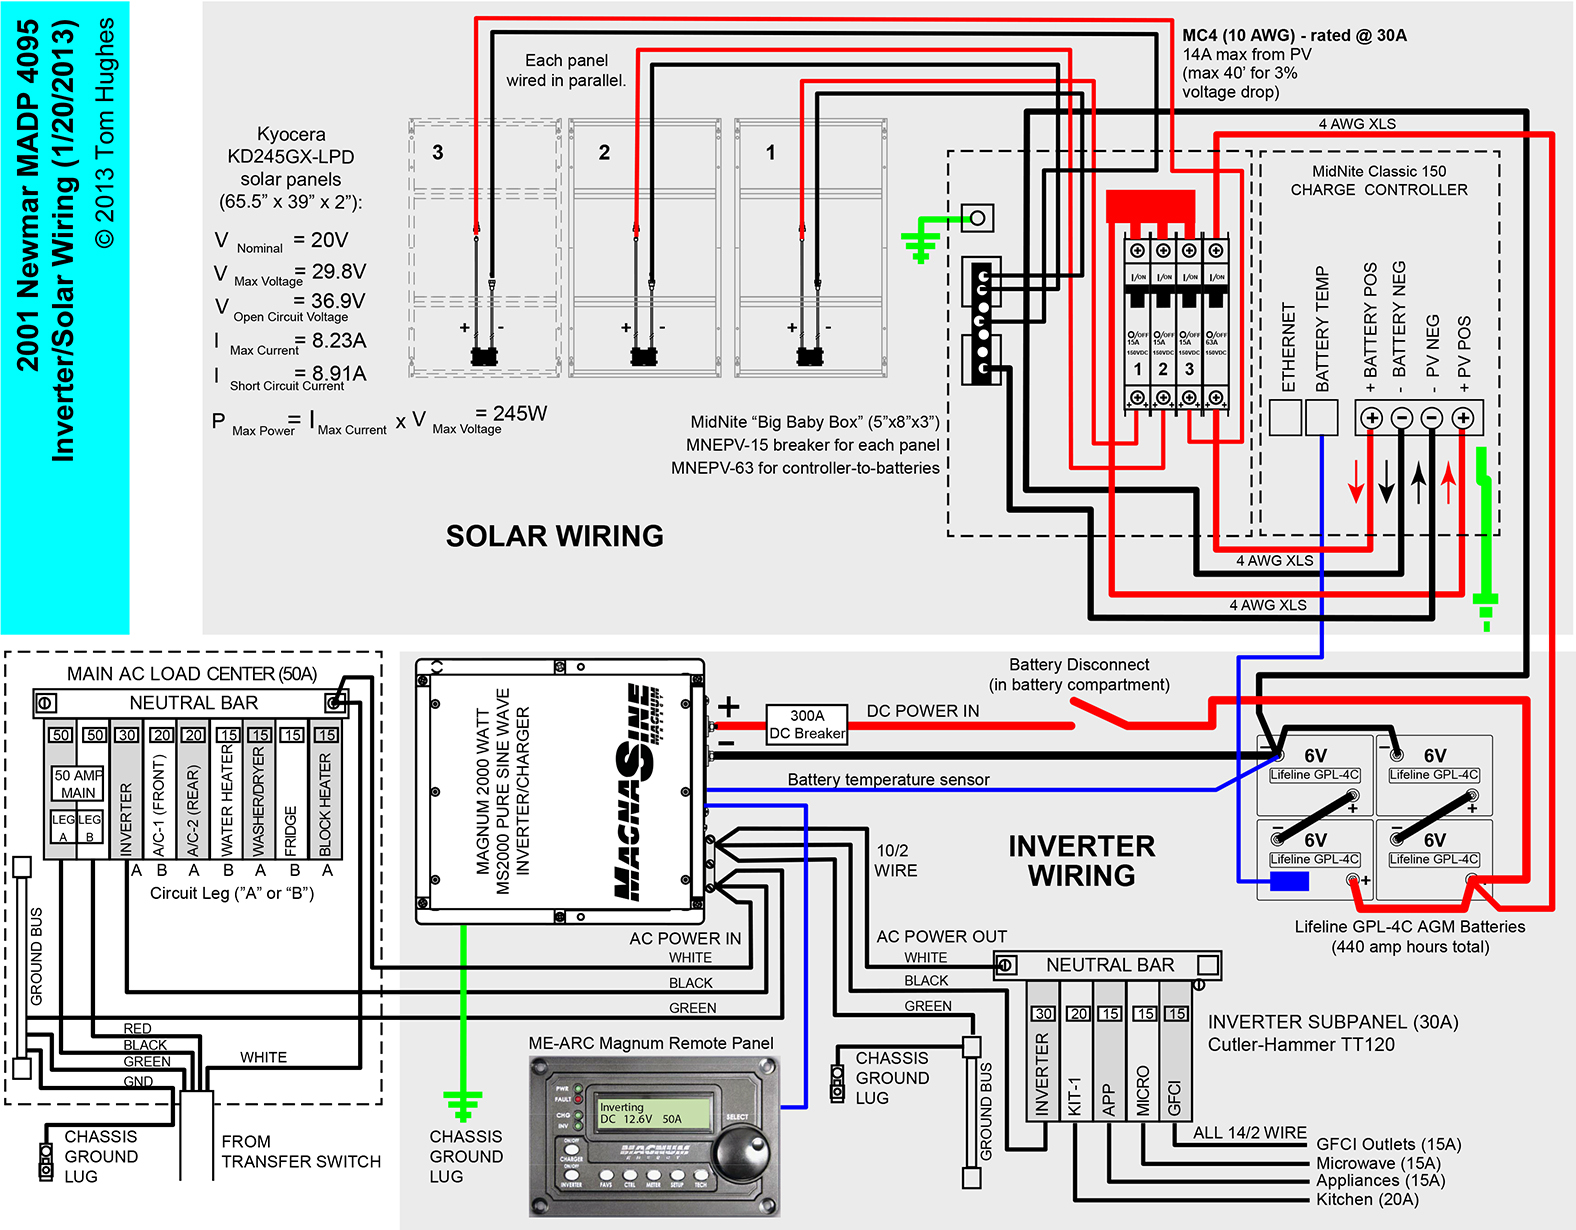 ms2000_newmar_inverter_wiring_01_20_2013 rv inverter diagram rv inverter transfer switch \u2022 wiring diagrams home wiring diagram for inverter at pacquiaovsvargaslive.co